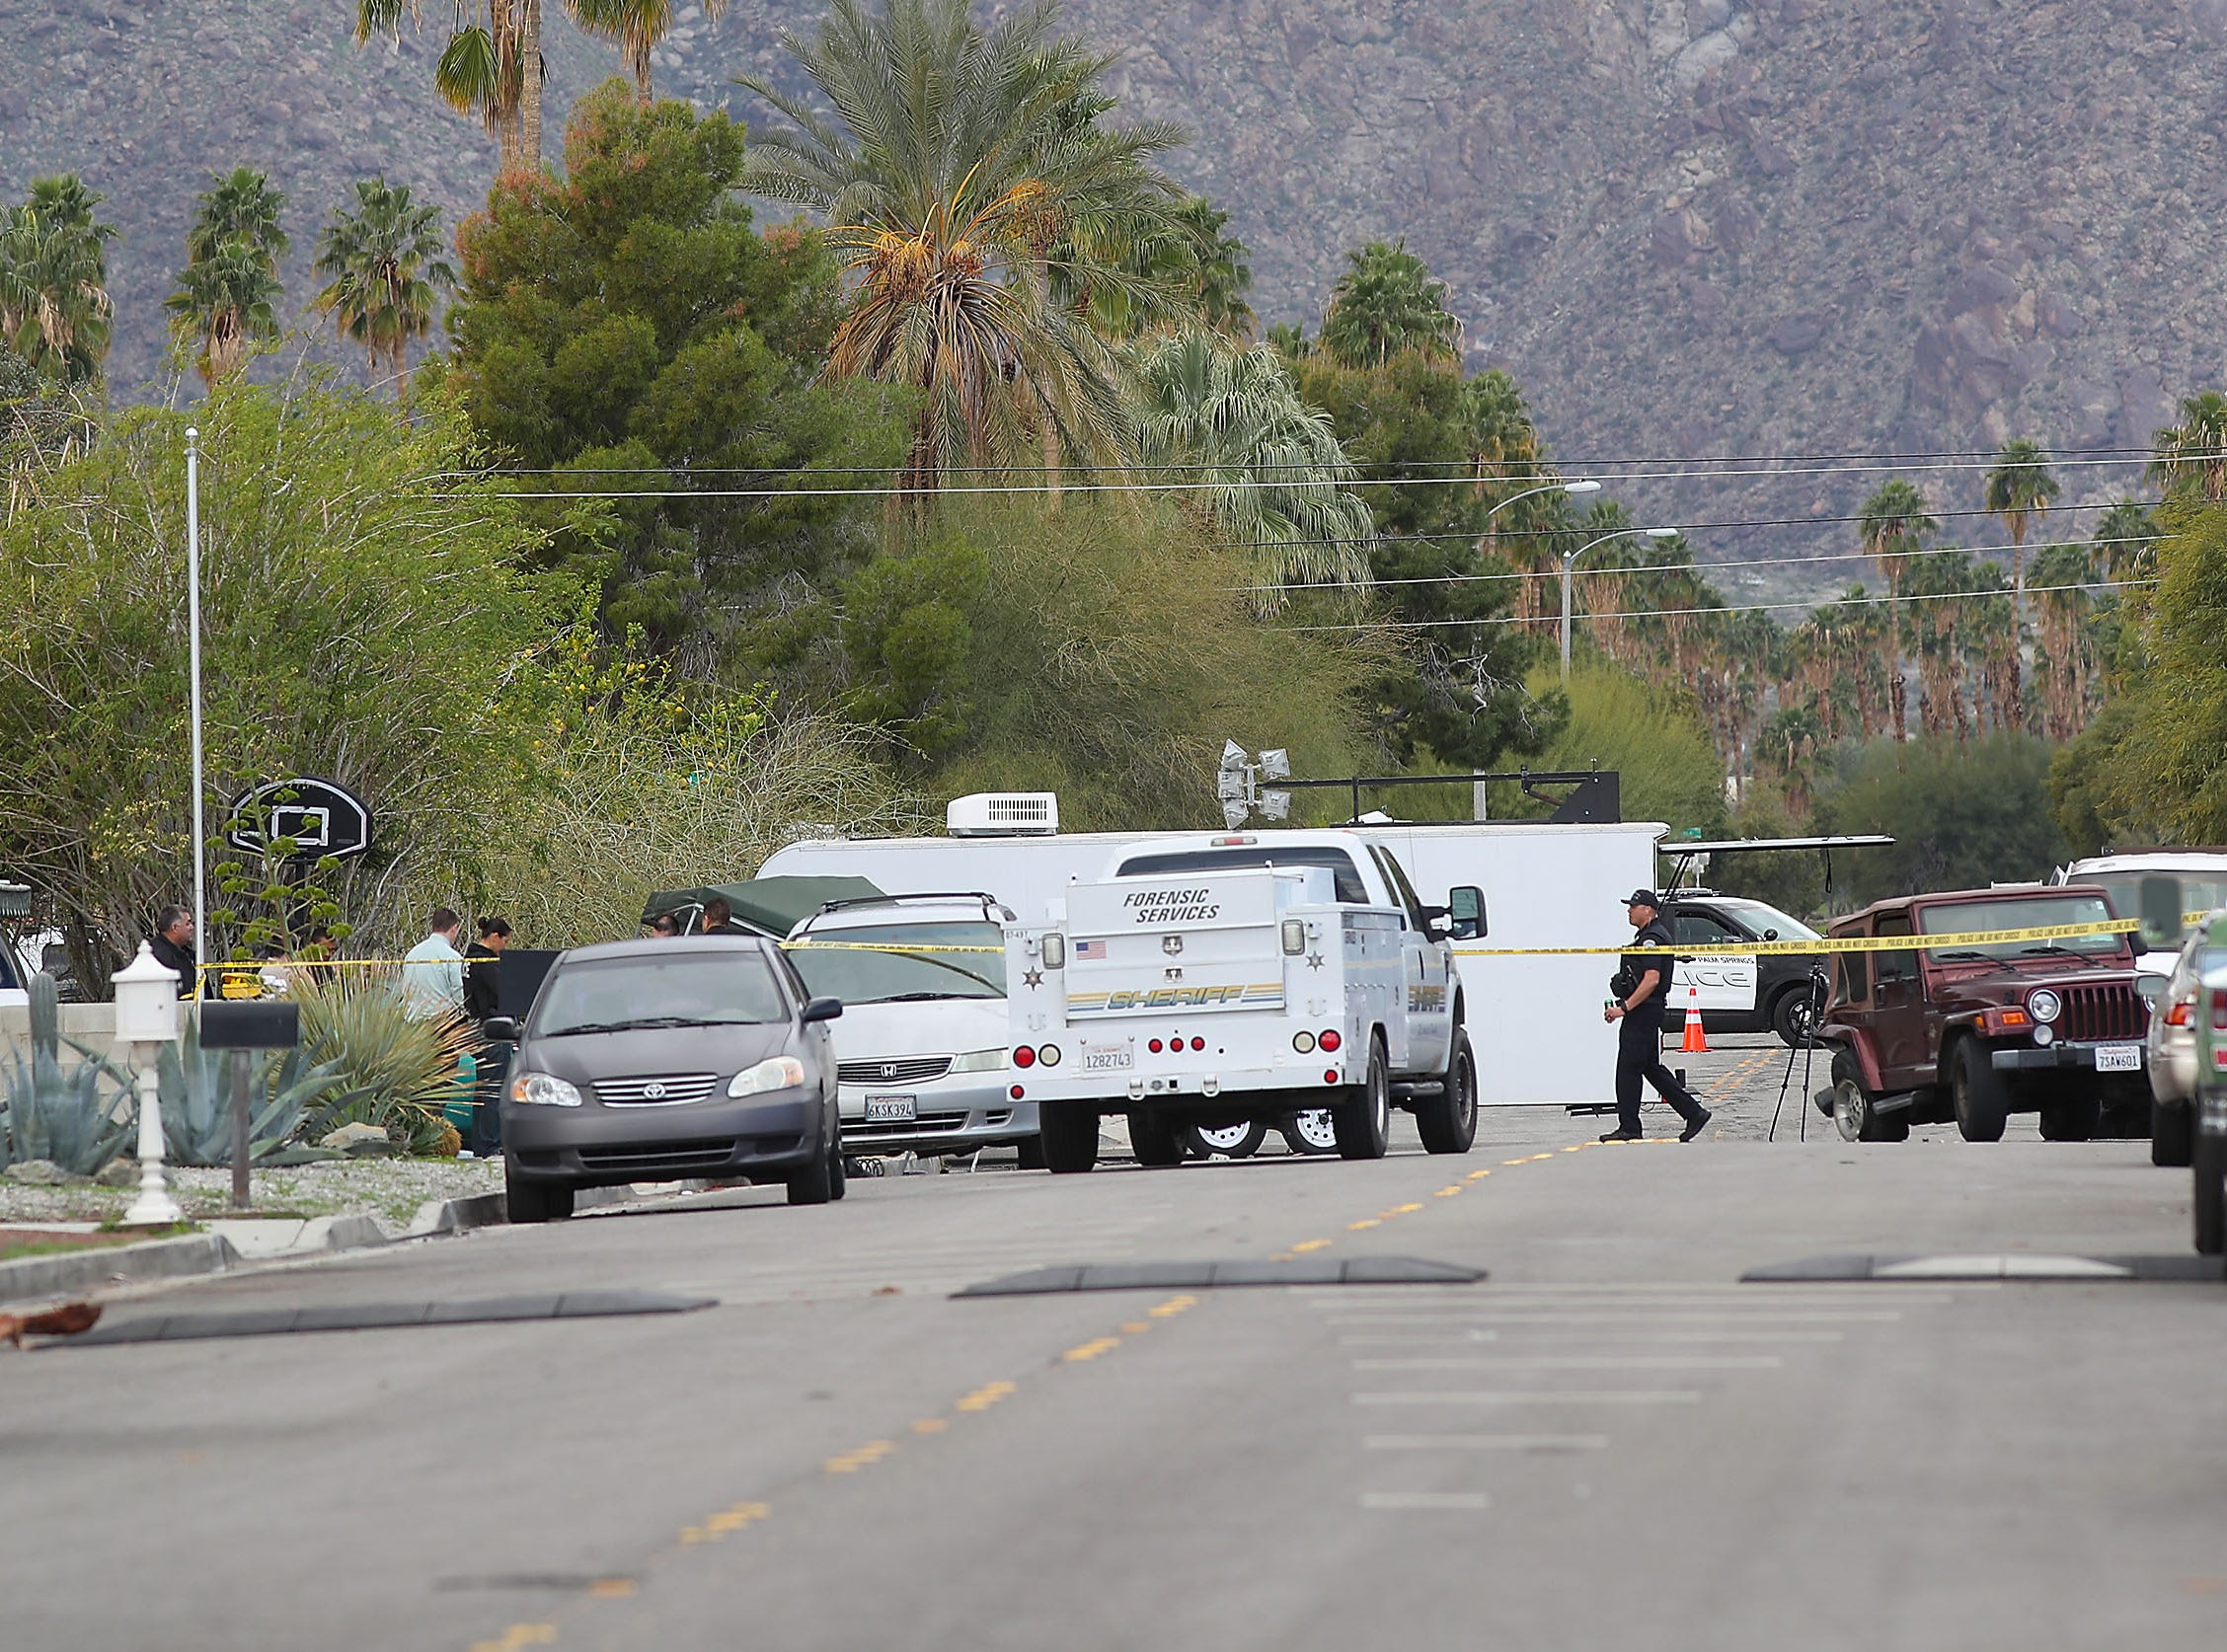 Police investigate the scene of an accident on Sunny Dunes Road in Palm Springs involving a car, hidden from view, on the left, February 4, 2019.